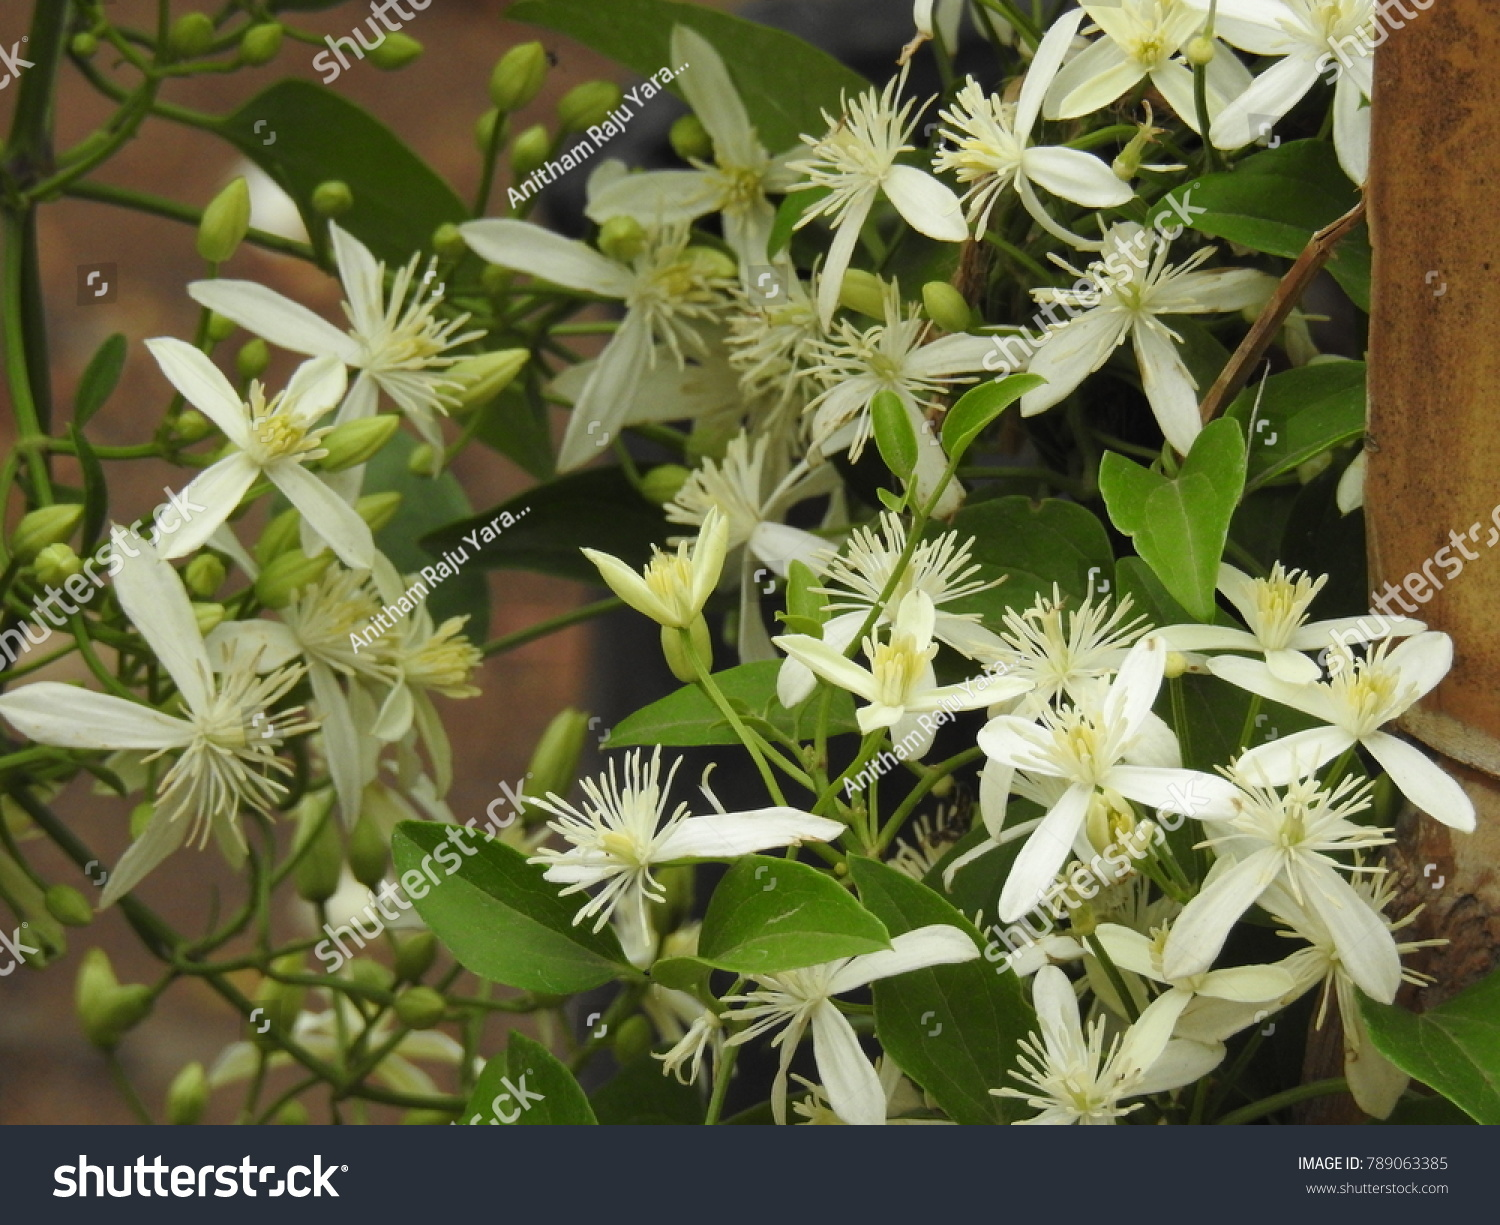 Clematis Vitalba Climbing Shrub Branched Grooved Stock Photo